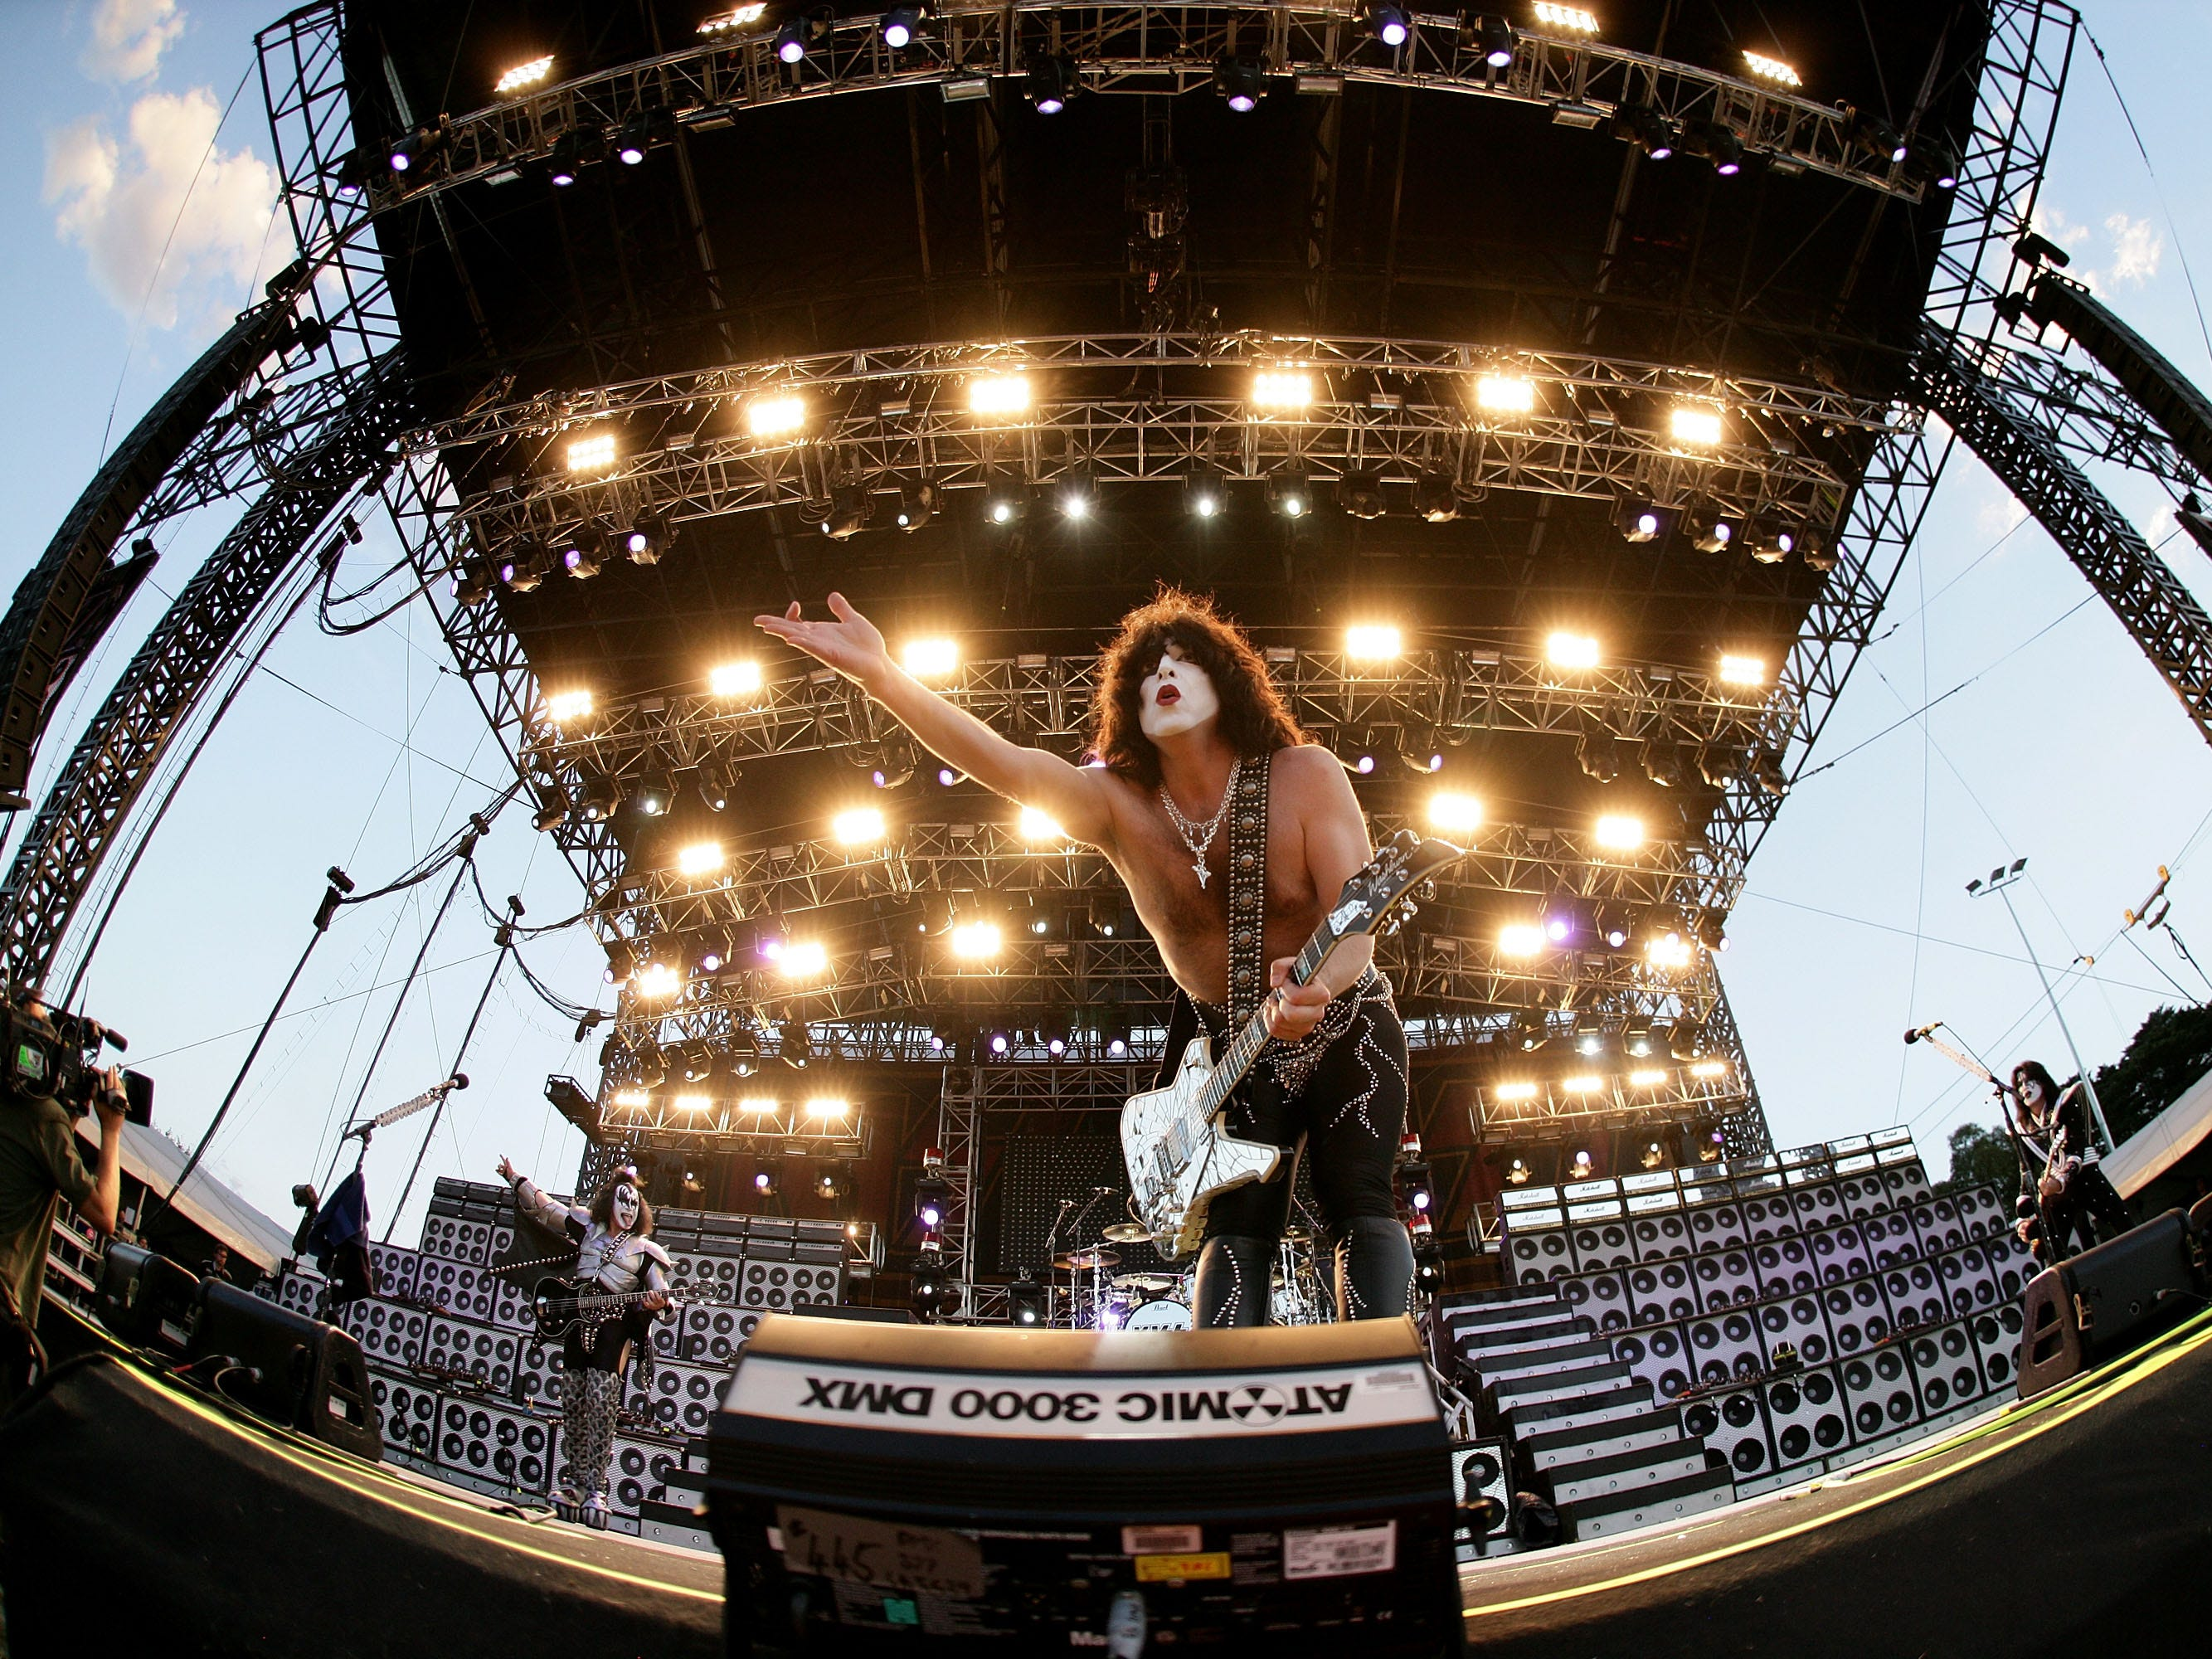 MELBOURNE, AUSTRALIA - MARCH 16:  Paul Stanley of Kiss performs on-stage for the first leg of their world tour following the Australian Formula One Grand Prix at the Albert Park Circuit on March 16, 2008 in Melbourne, Australia.  (Photo by Kristian Dowling/Getty Images)